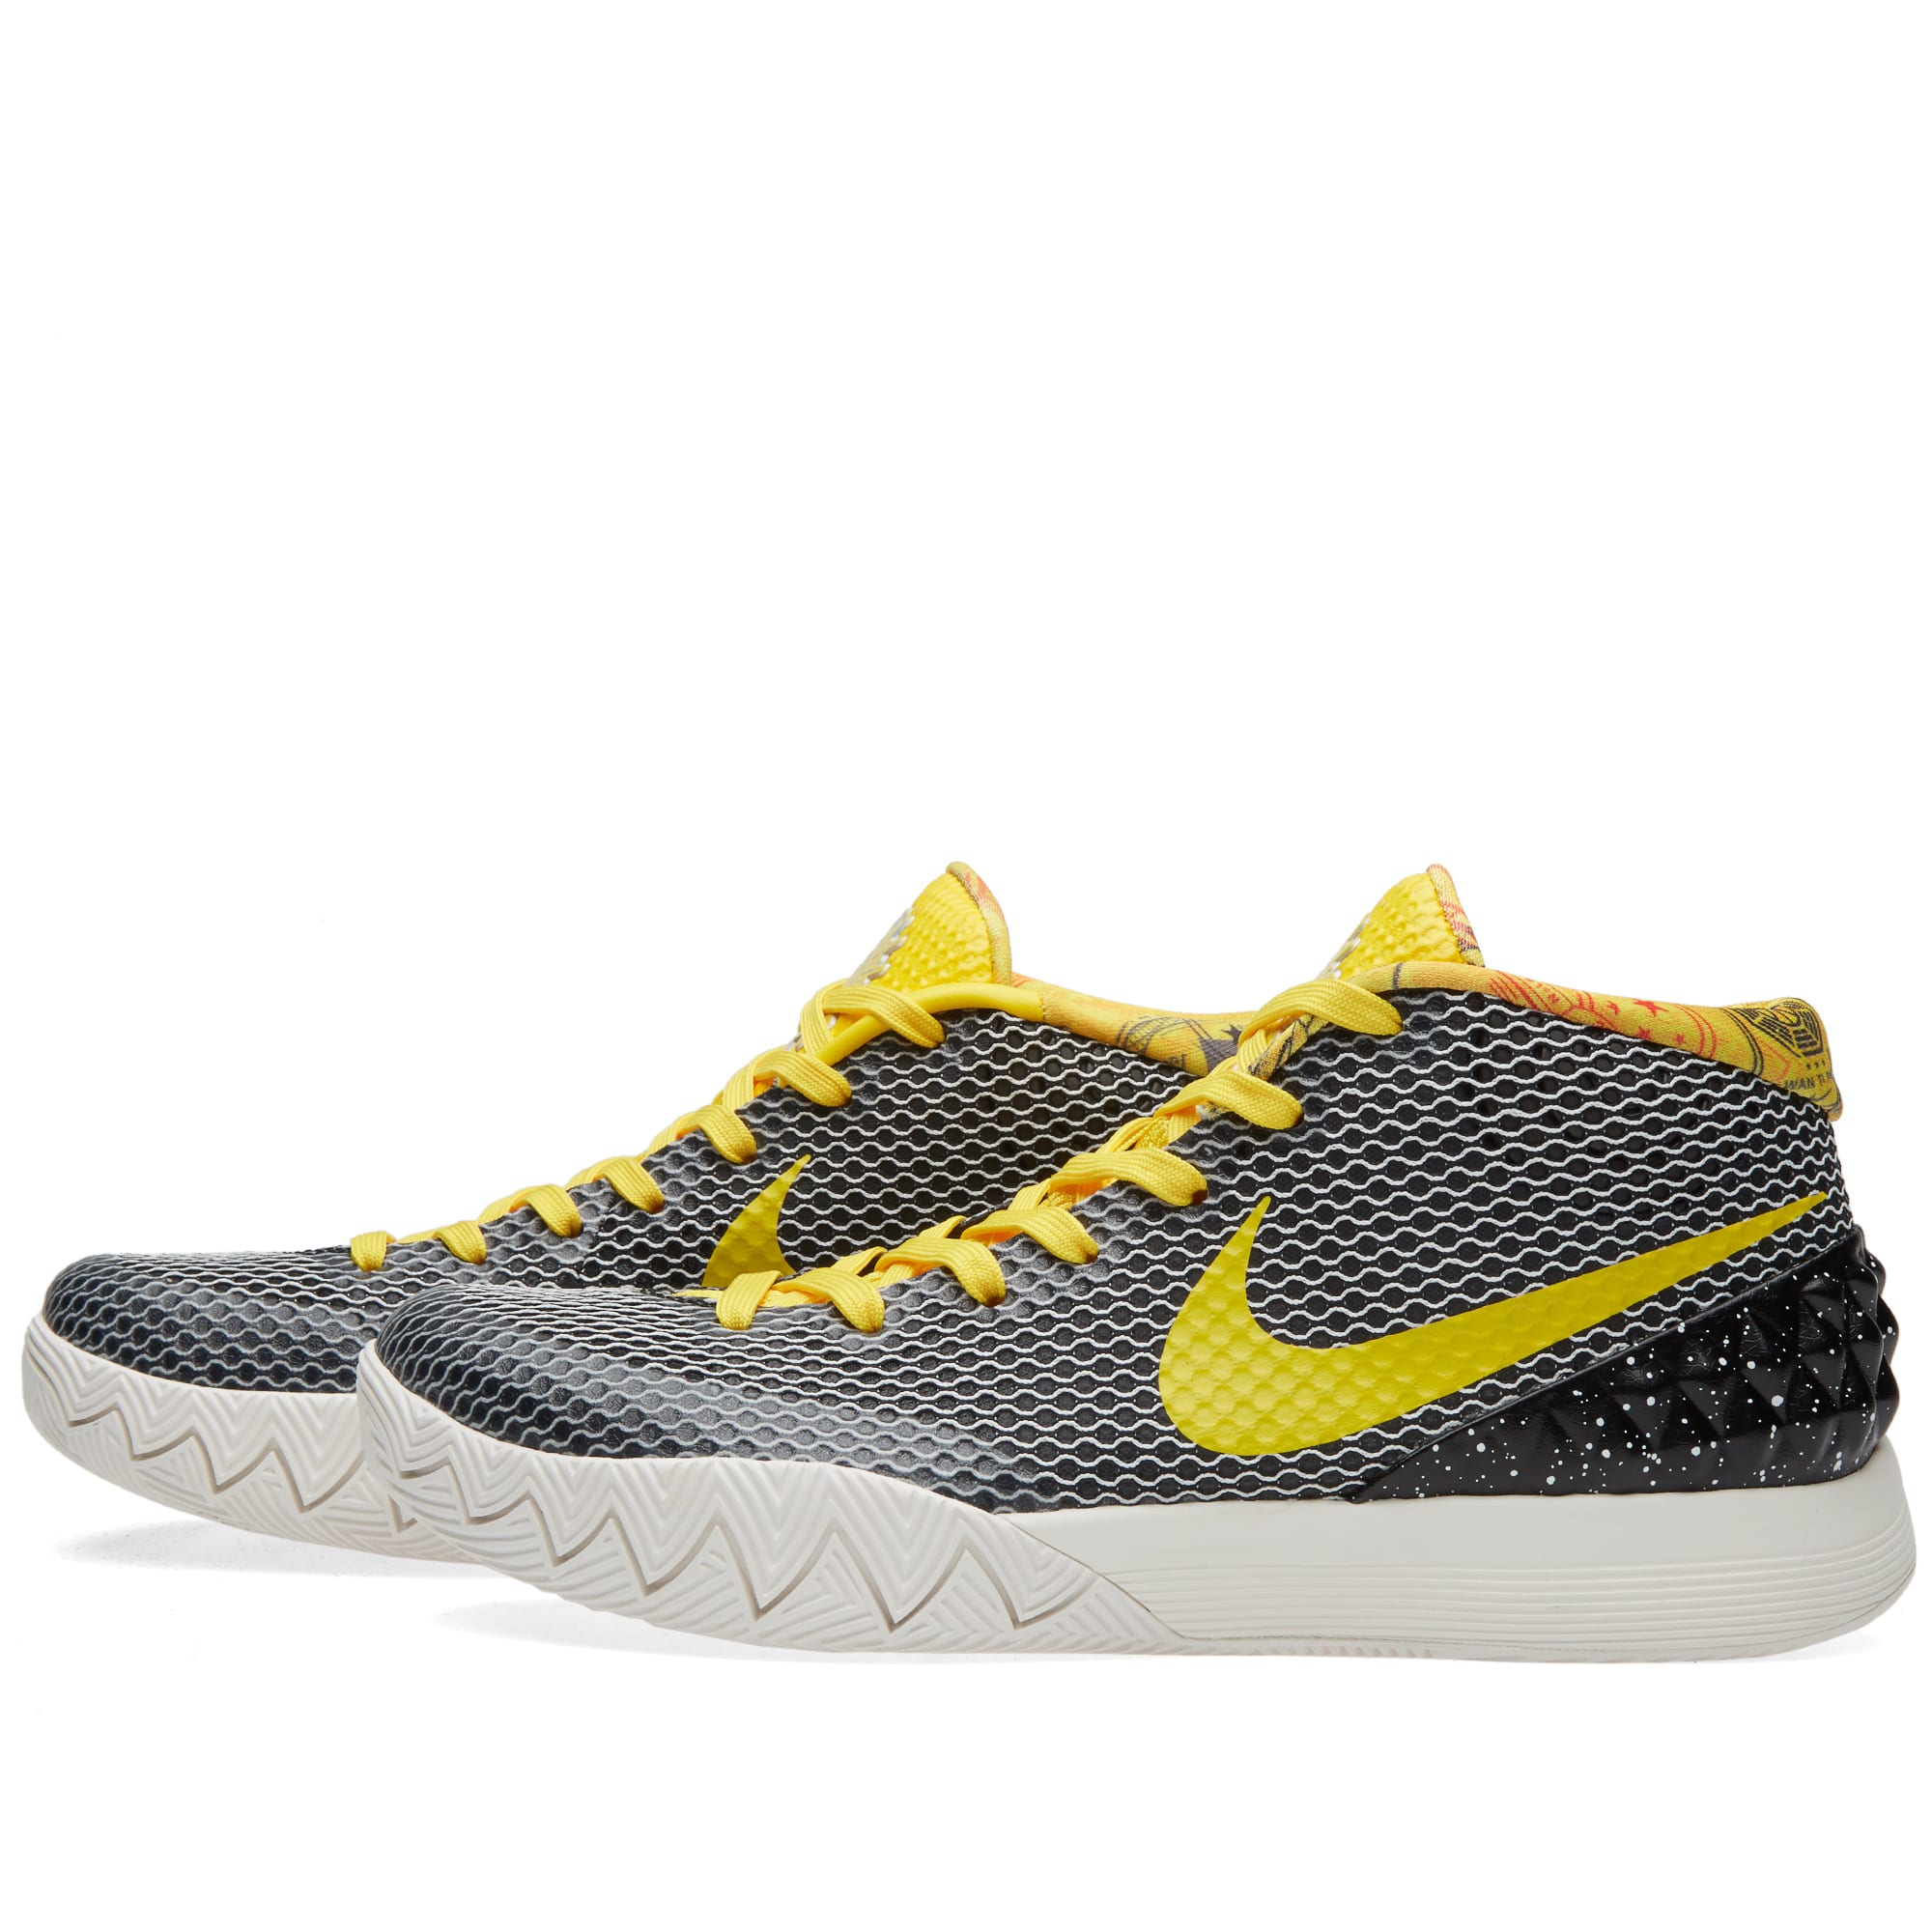 sneakers for cheap 93591 8fadd Nike Kyrie 1 LTD. Black   Tour Yellow